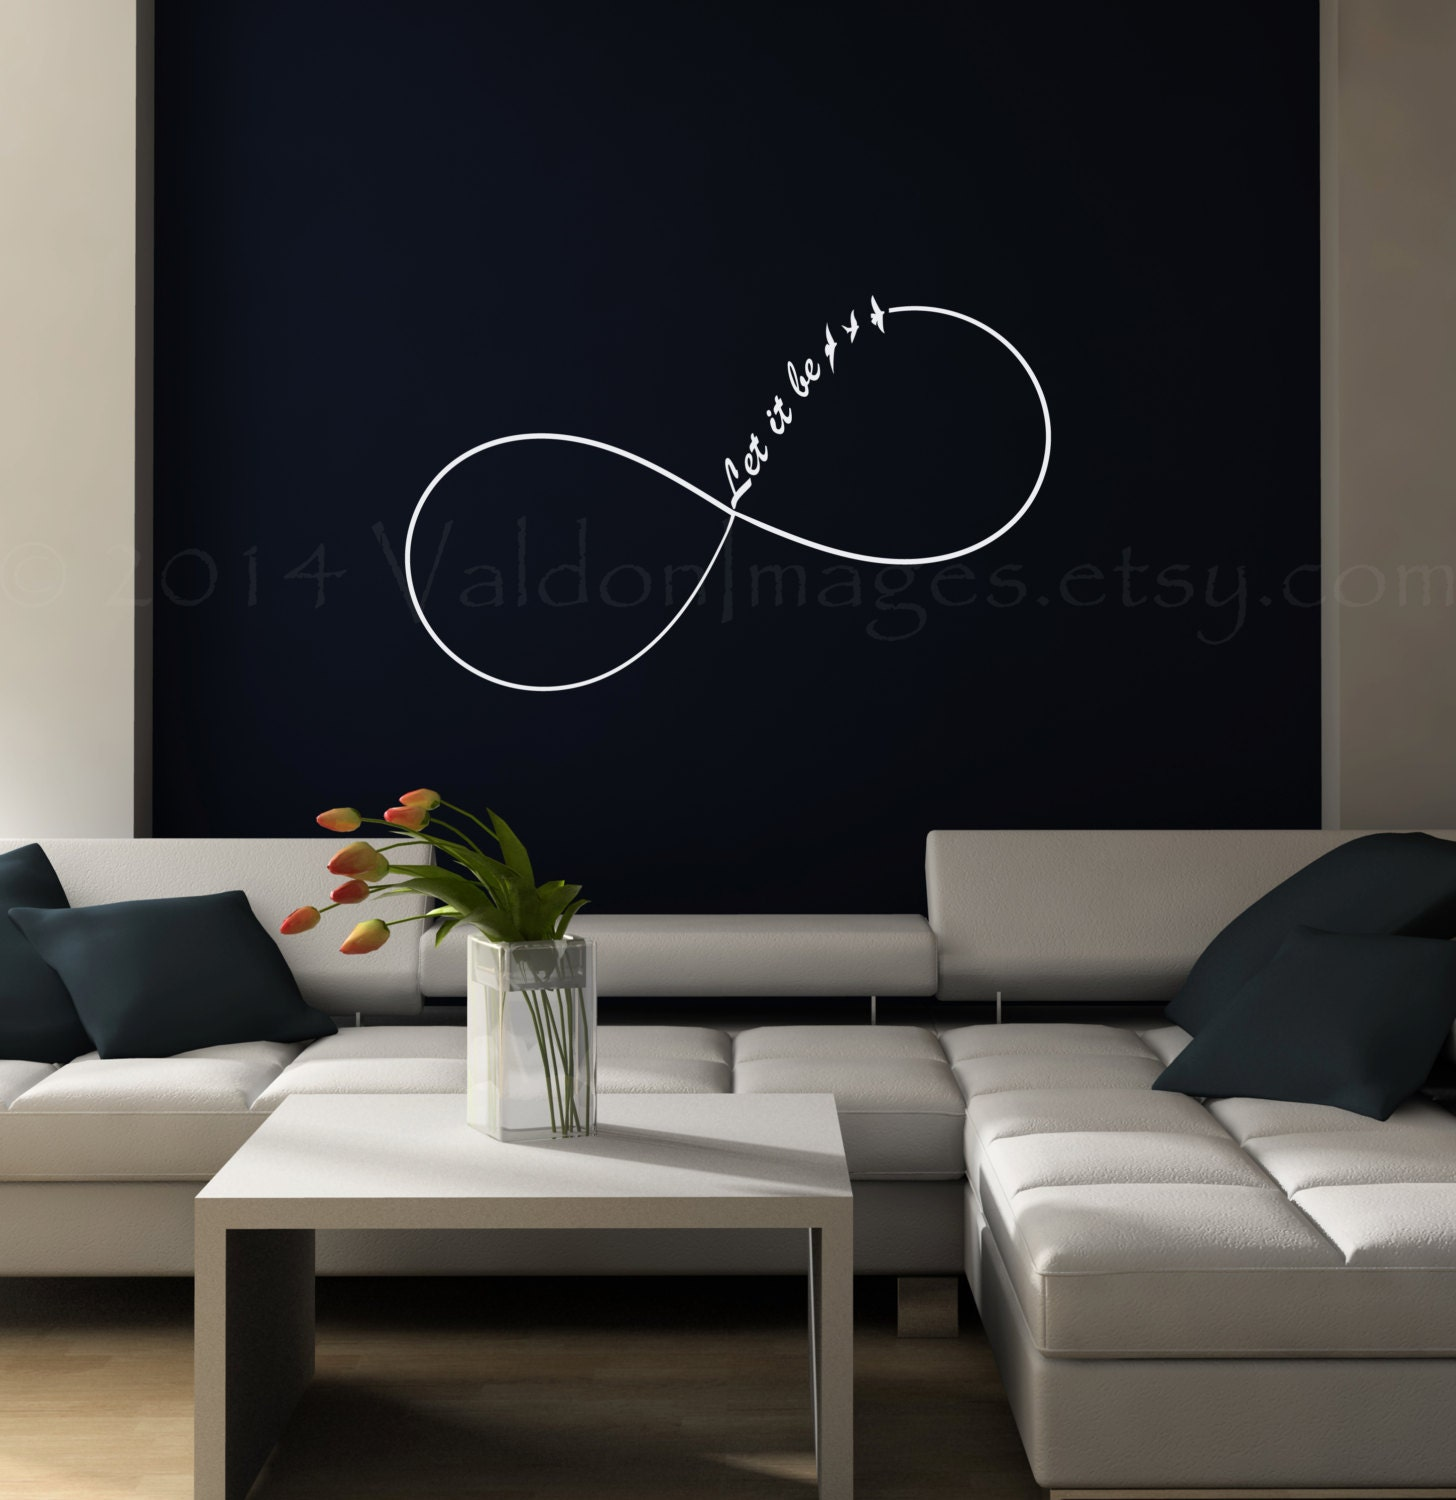 Wall decals for teens teens can make their mark without leaving a mark with new with media - Wall designs bedroom ...